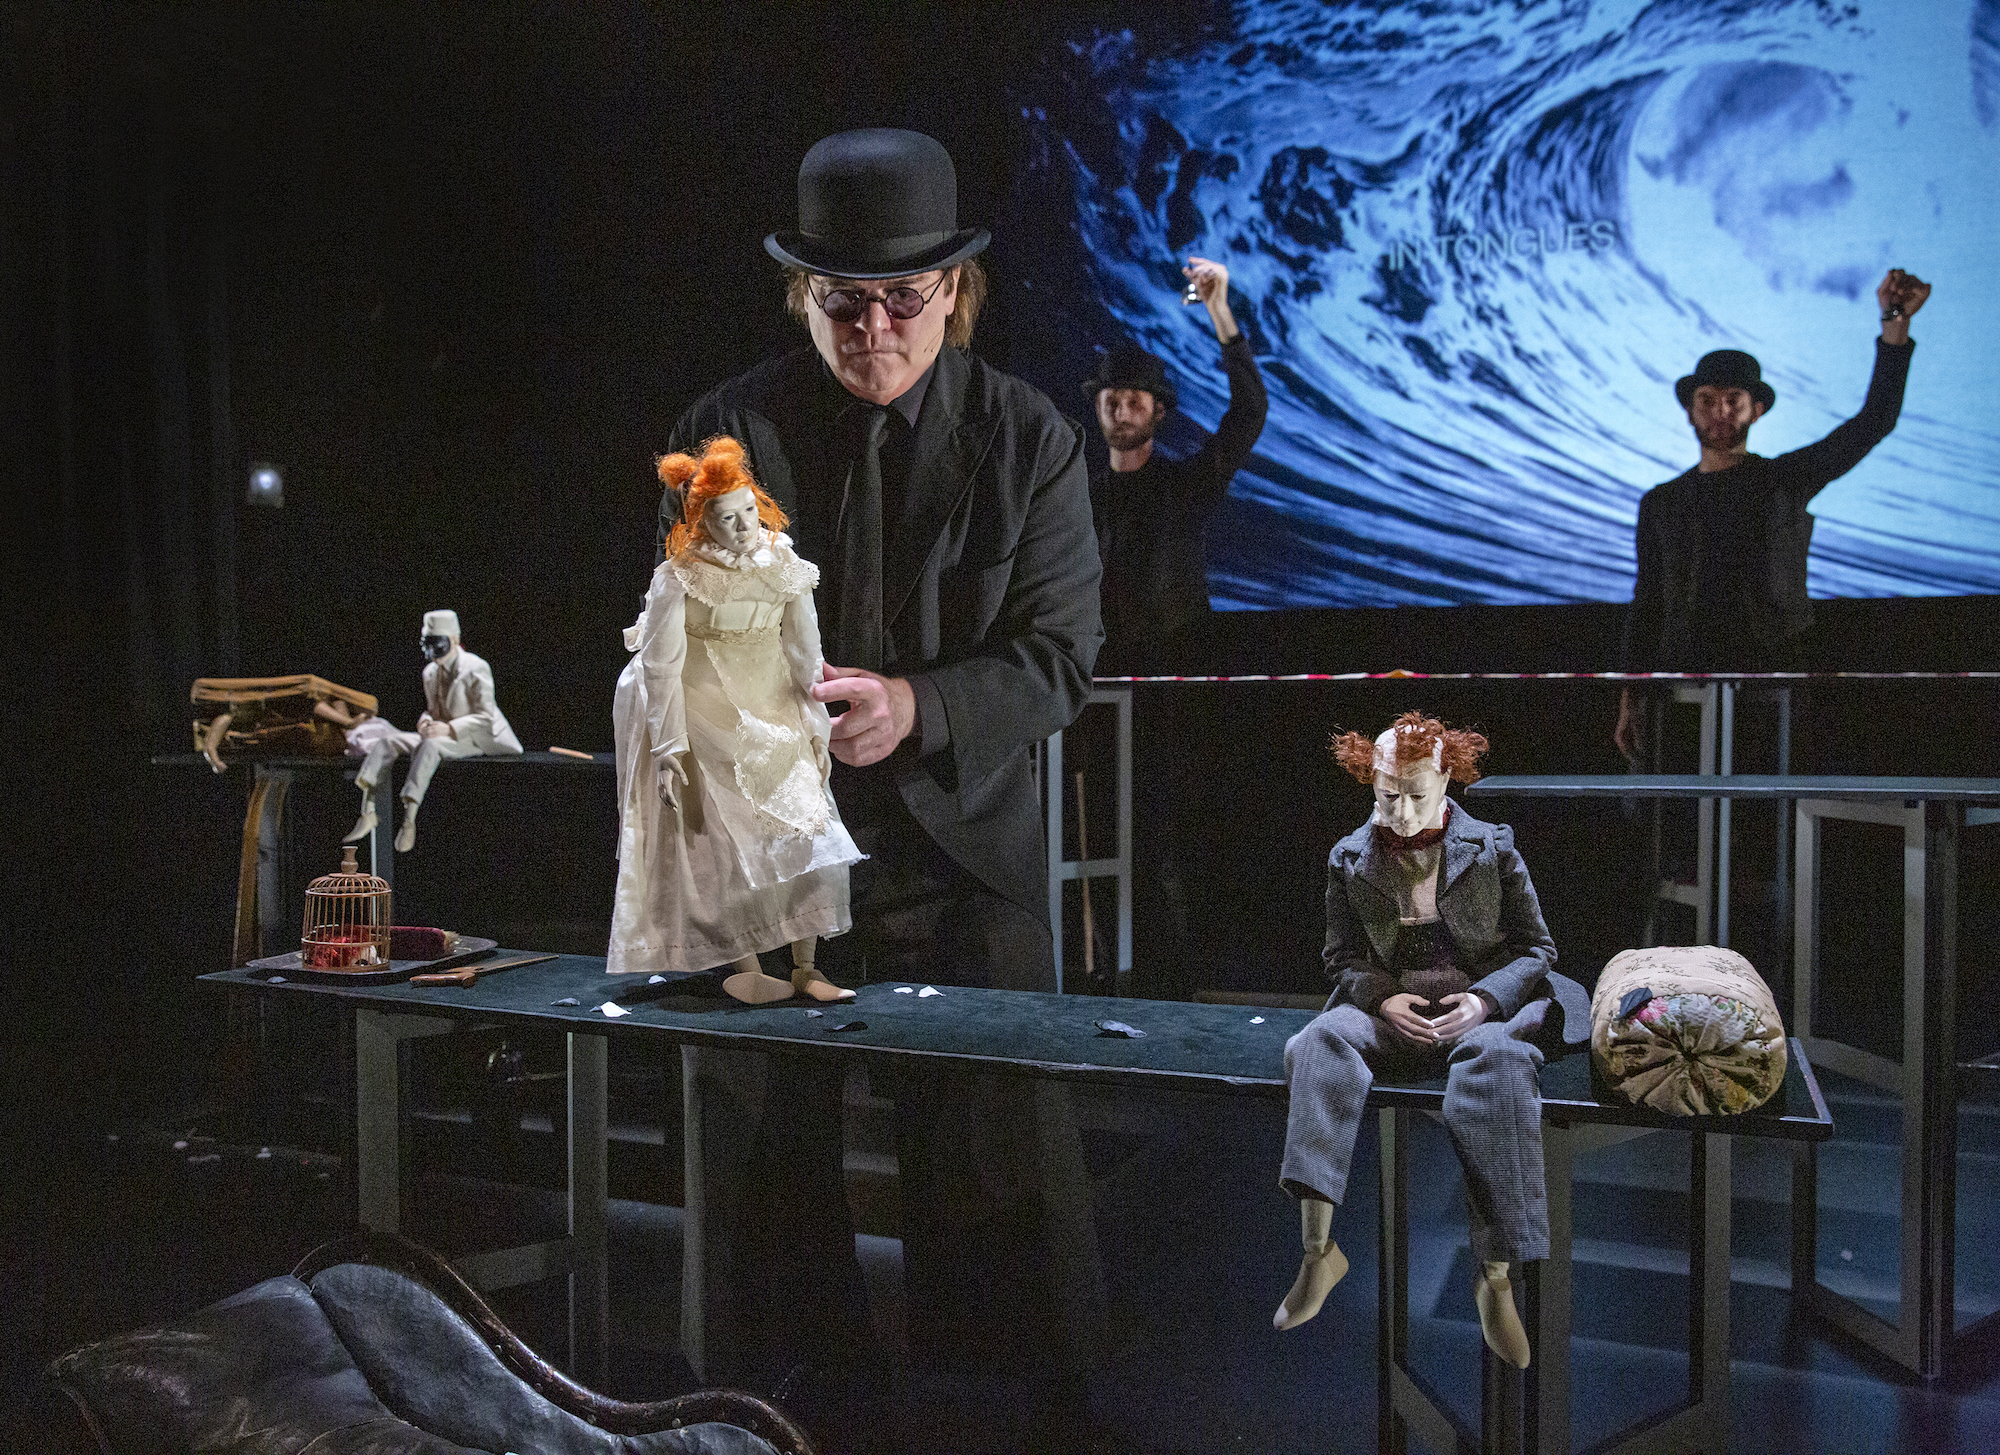 A puppeteer in a bowler hat and black suit is holding a puppet in a white dress with orange hair. There are two other puppets seated on tables. Behind them are two performers holding up objects in their left hands. The background is a projected photo of a wave.